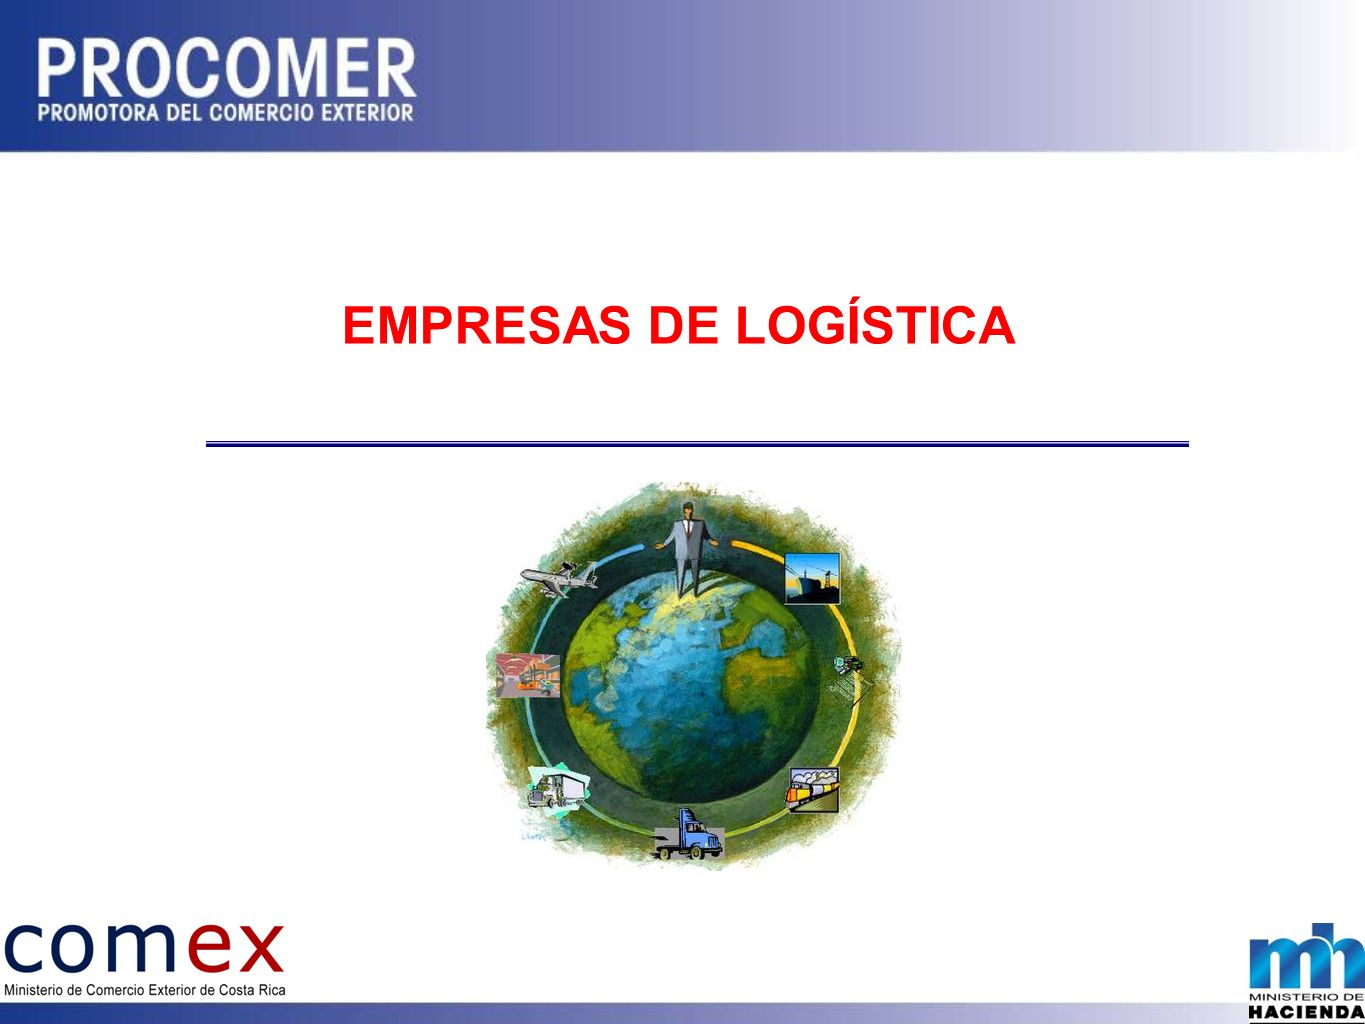 EMPRESAS DE LOGÍSTICA THIS REGIME IS REGULATED BY LAW 7210 AND ITS BYLAWS